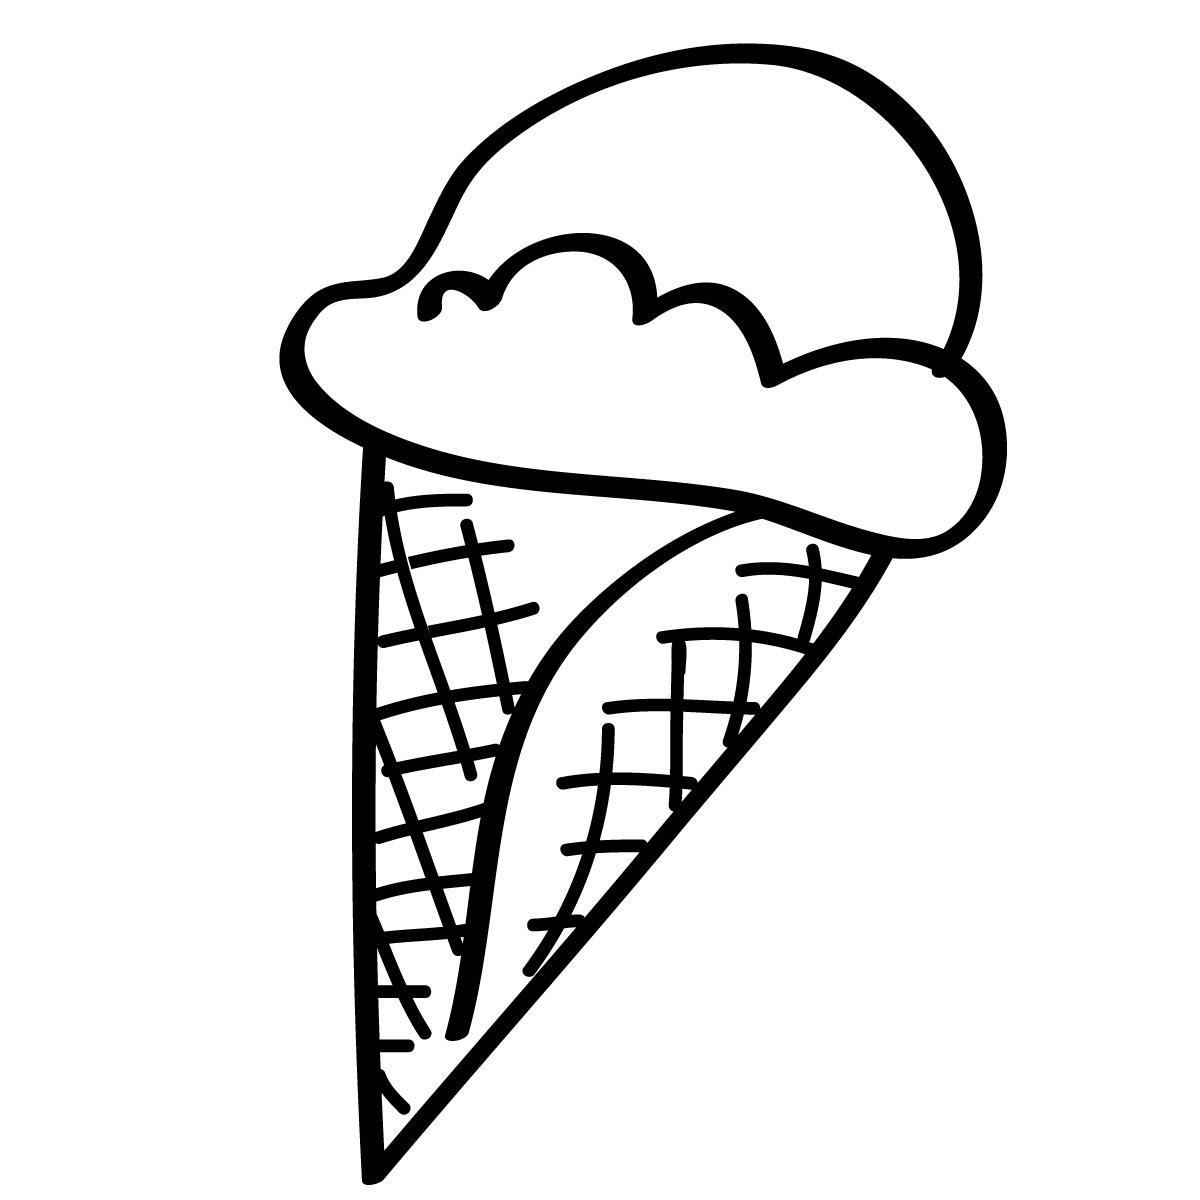 free black and white ice cream sundae clipart - photo #21